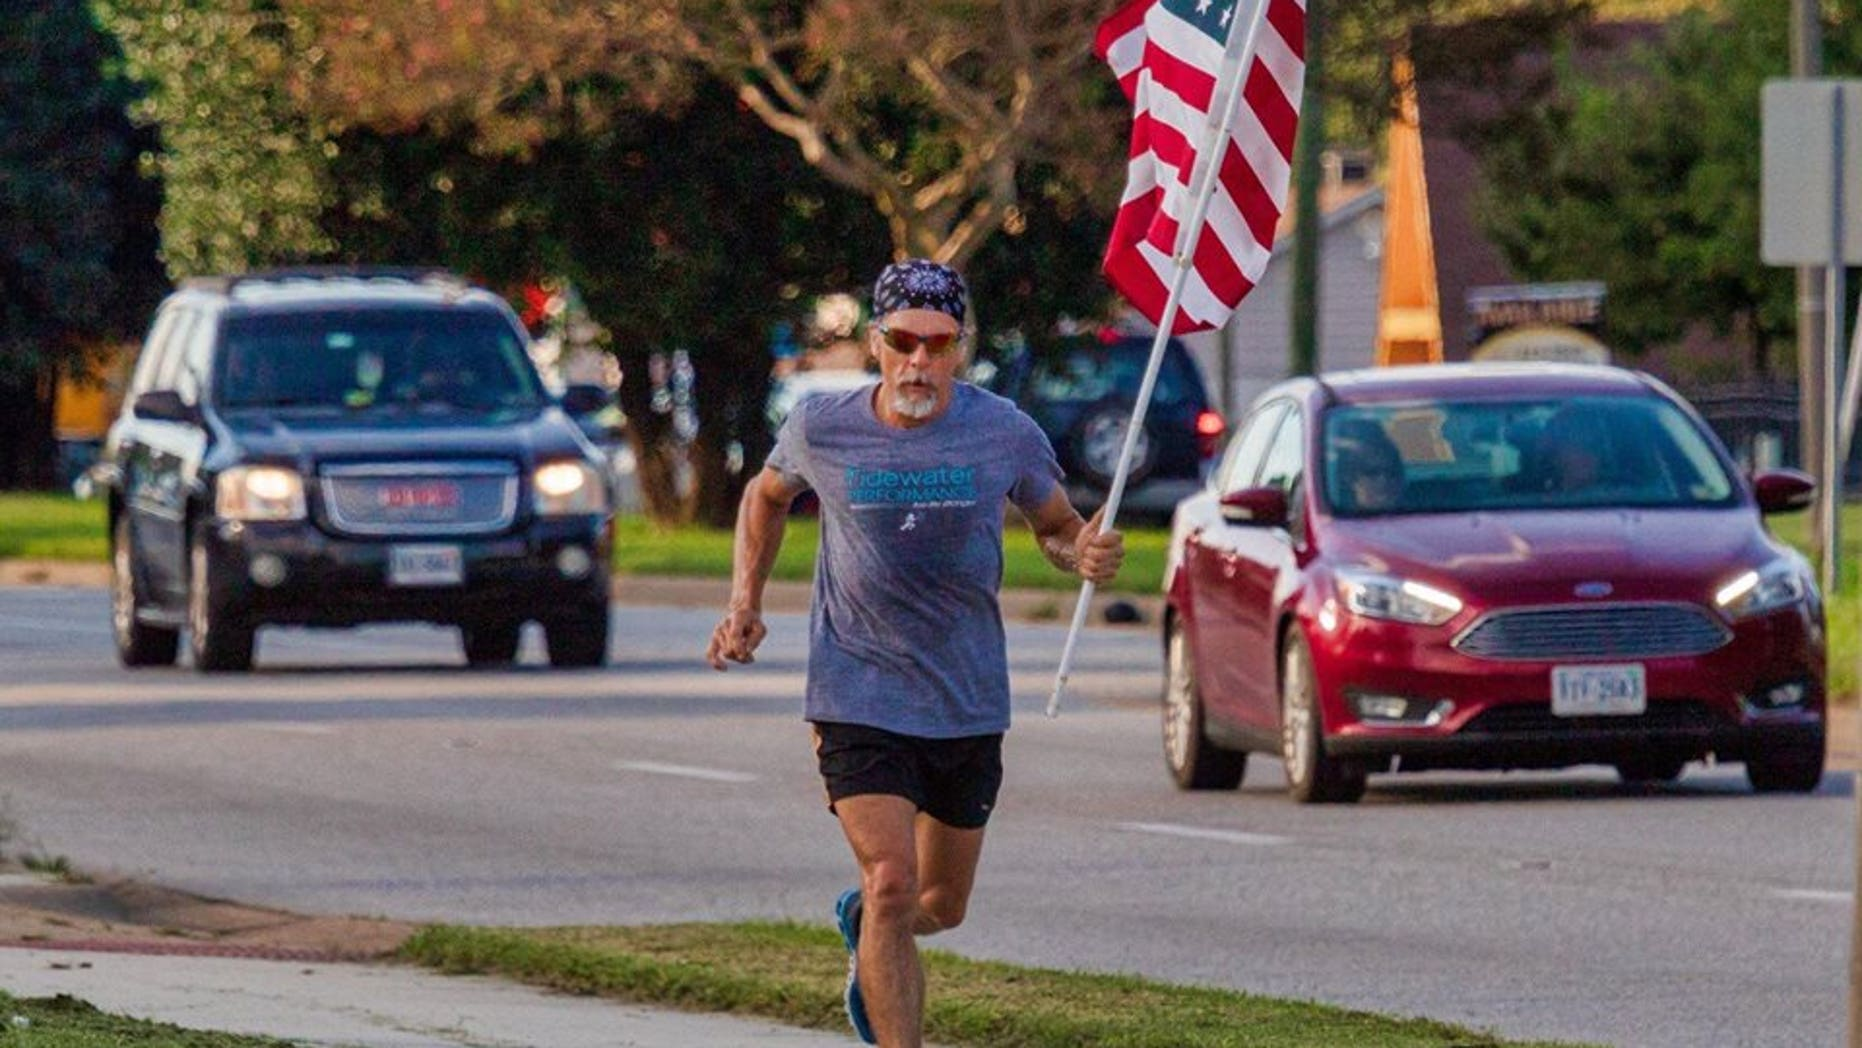 Virginia man Wayne Parfitt runs with the flag in hand to honor his son, who is deployed overseas.